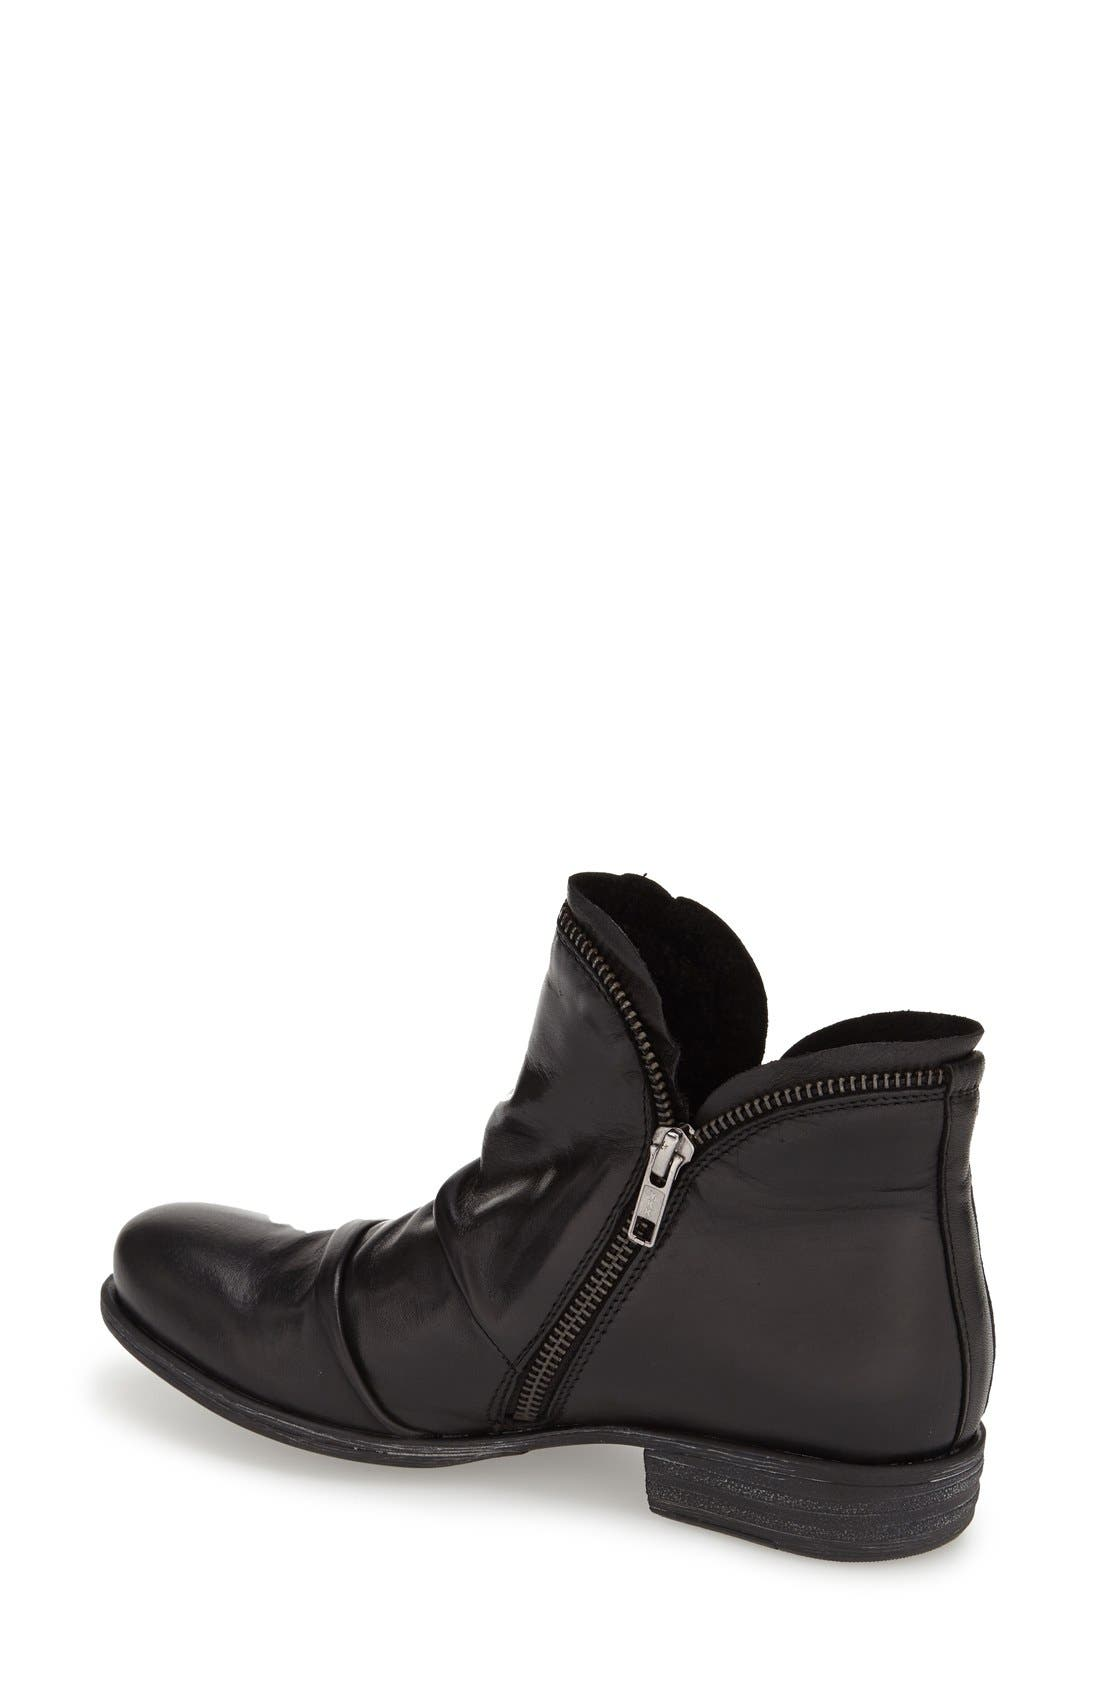 52cb05a71d slouch boots | Nordstrom